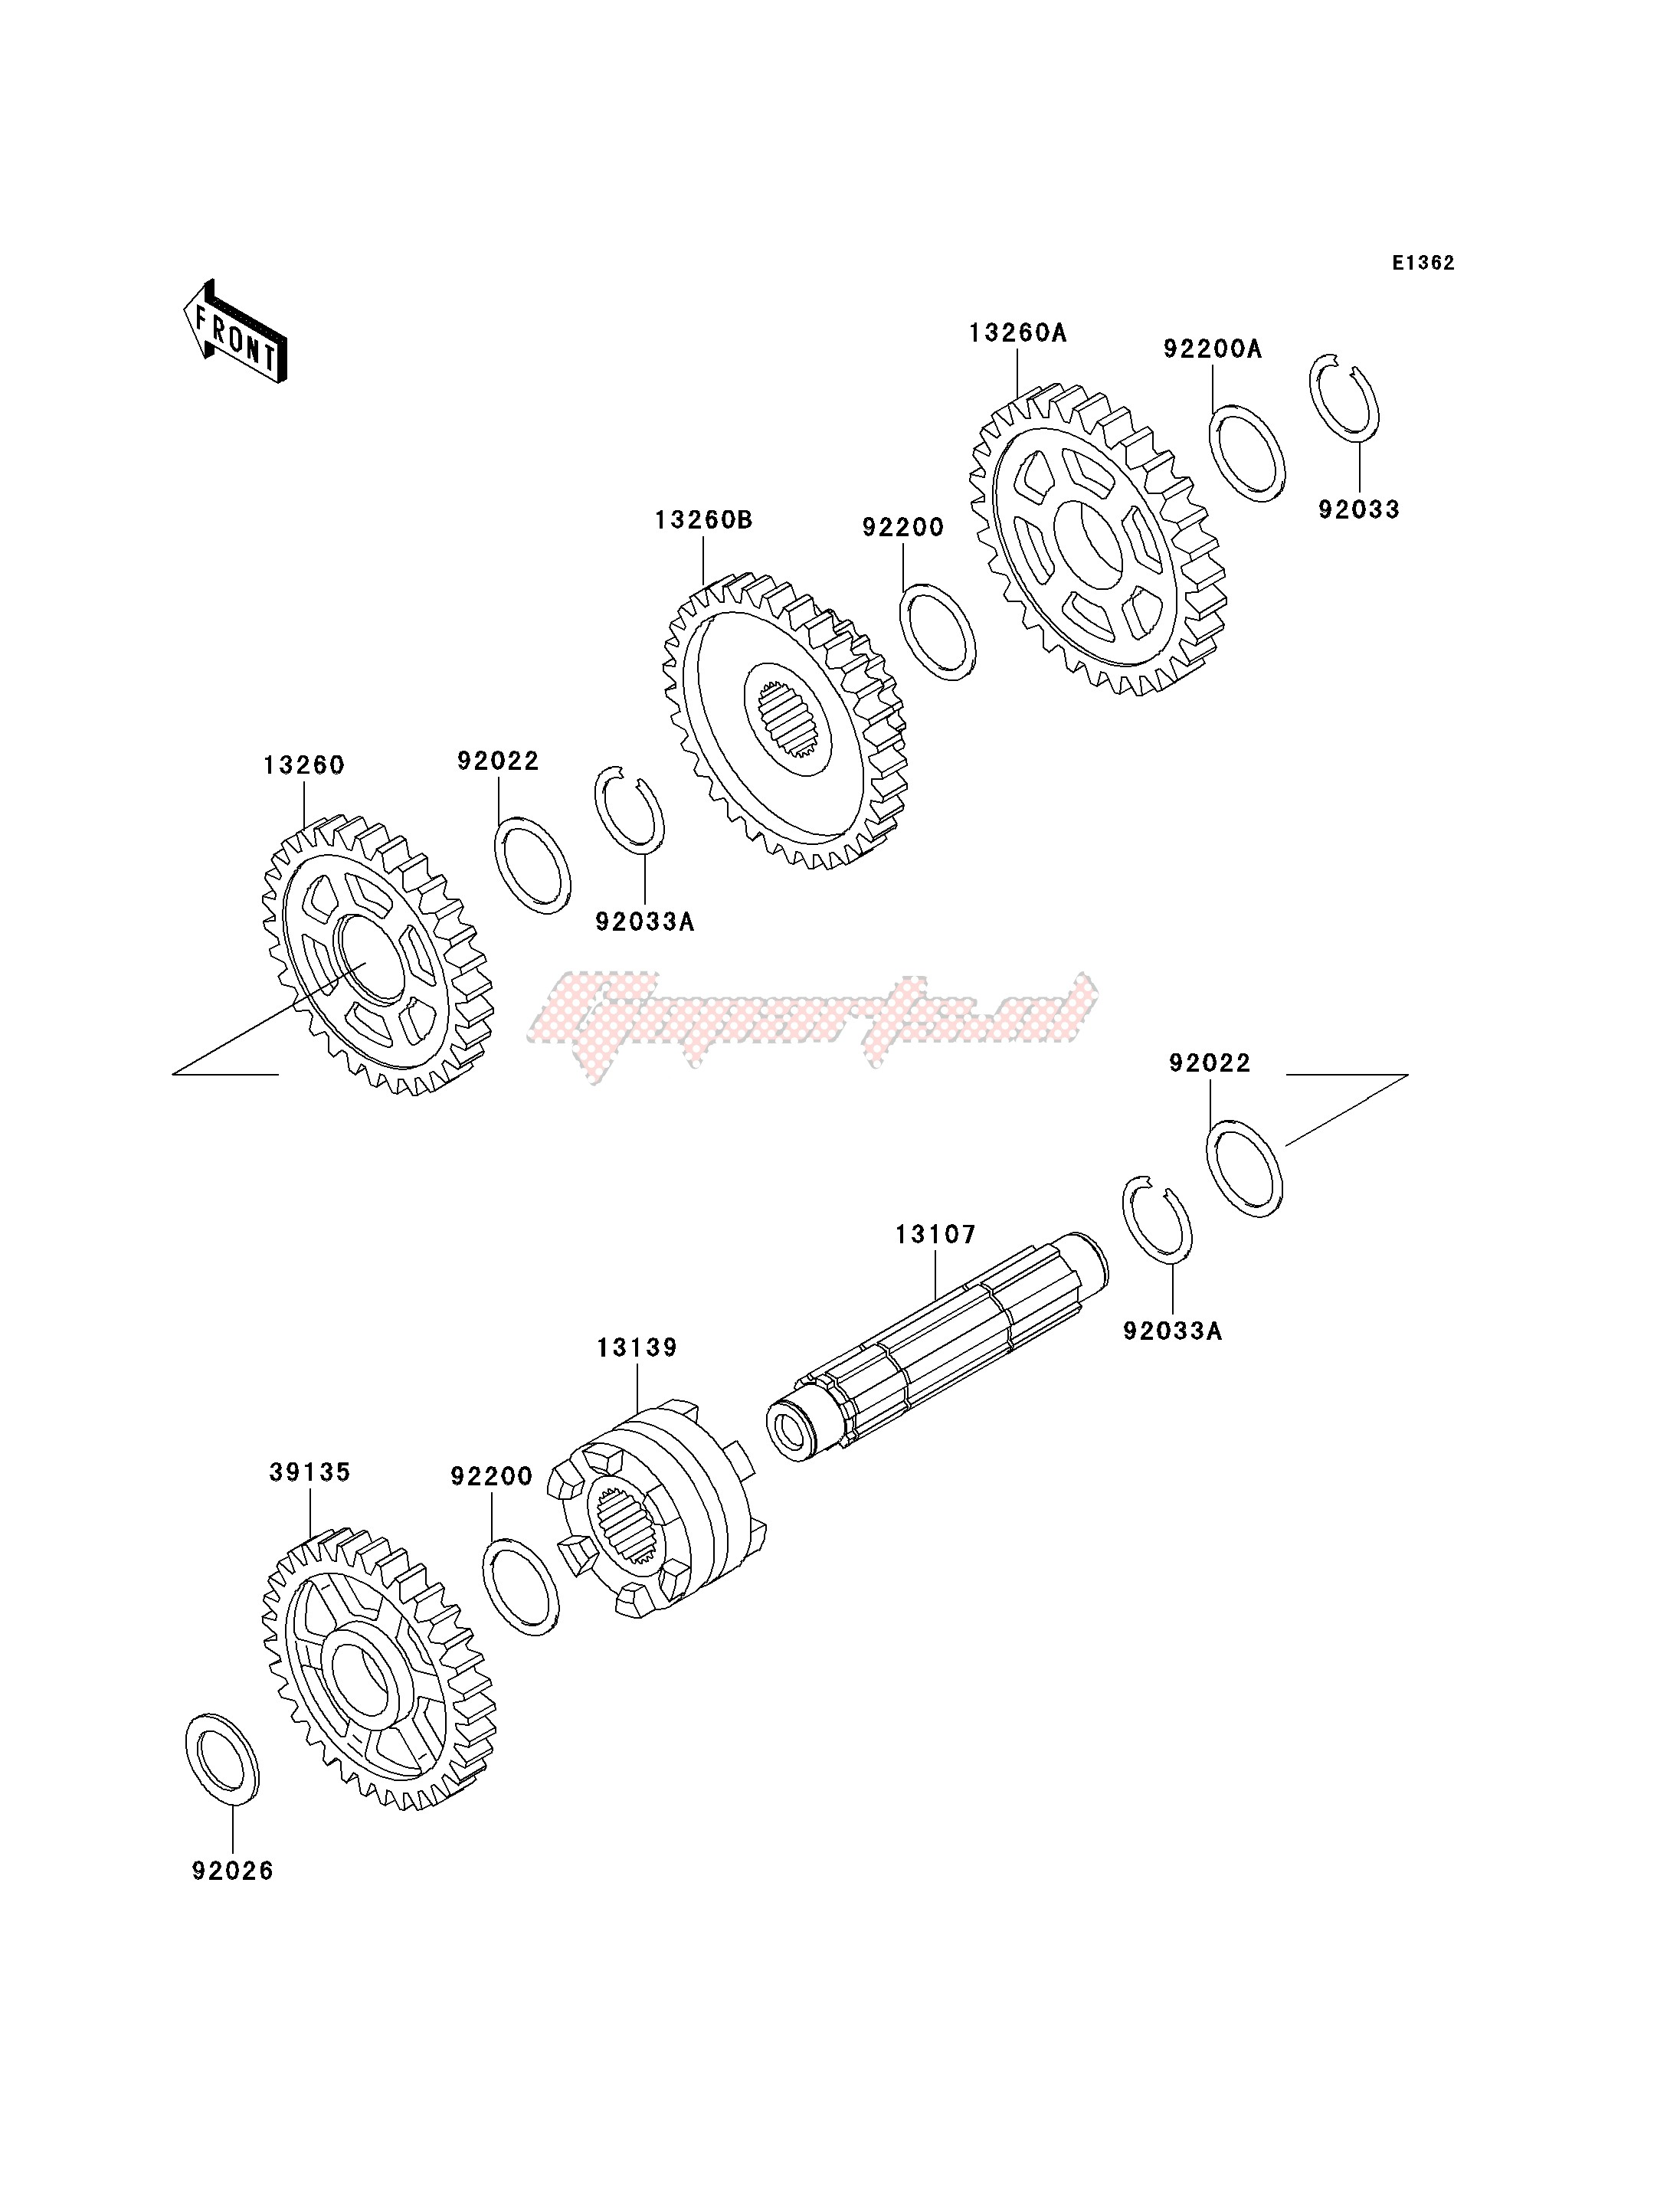 Engine-GEAR CHANGE DRUM_SHIFT FORK-- S- -